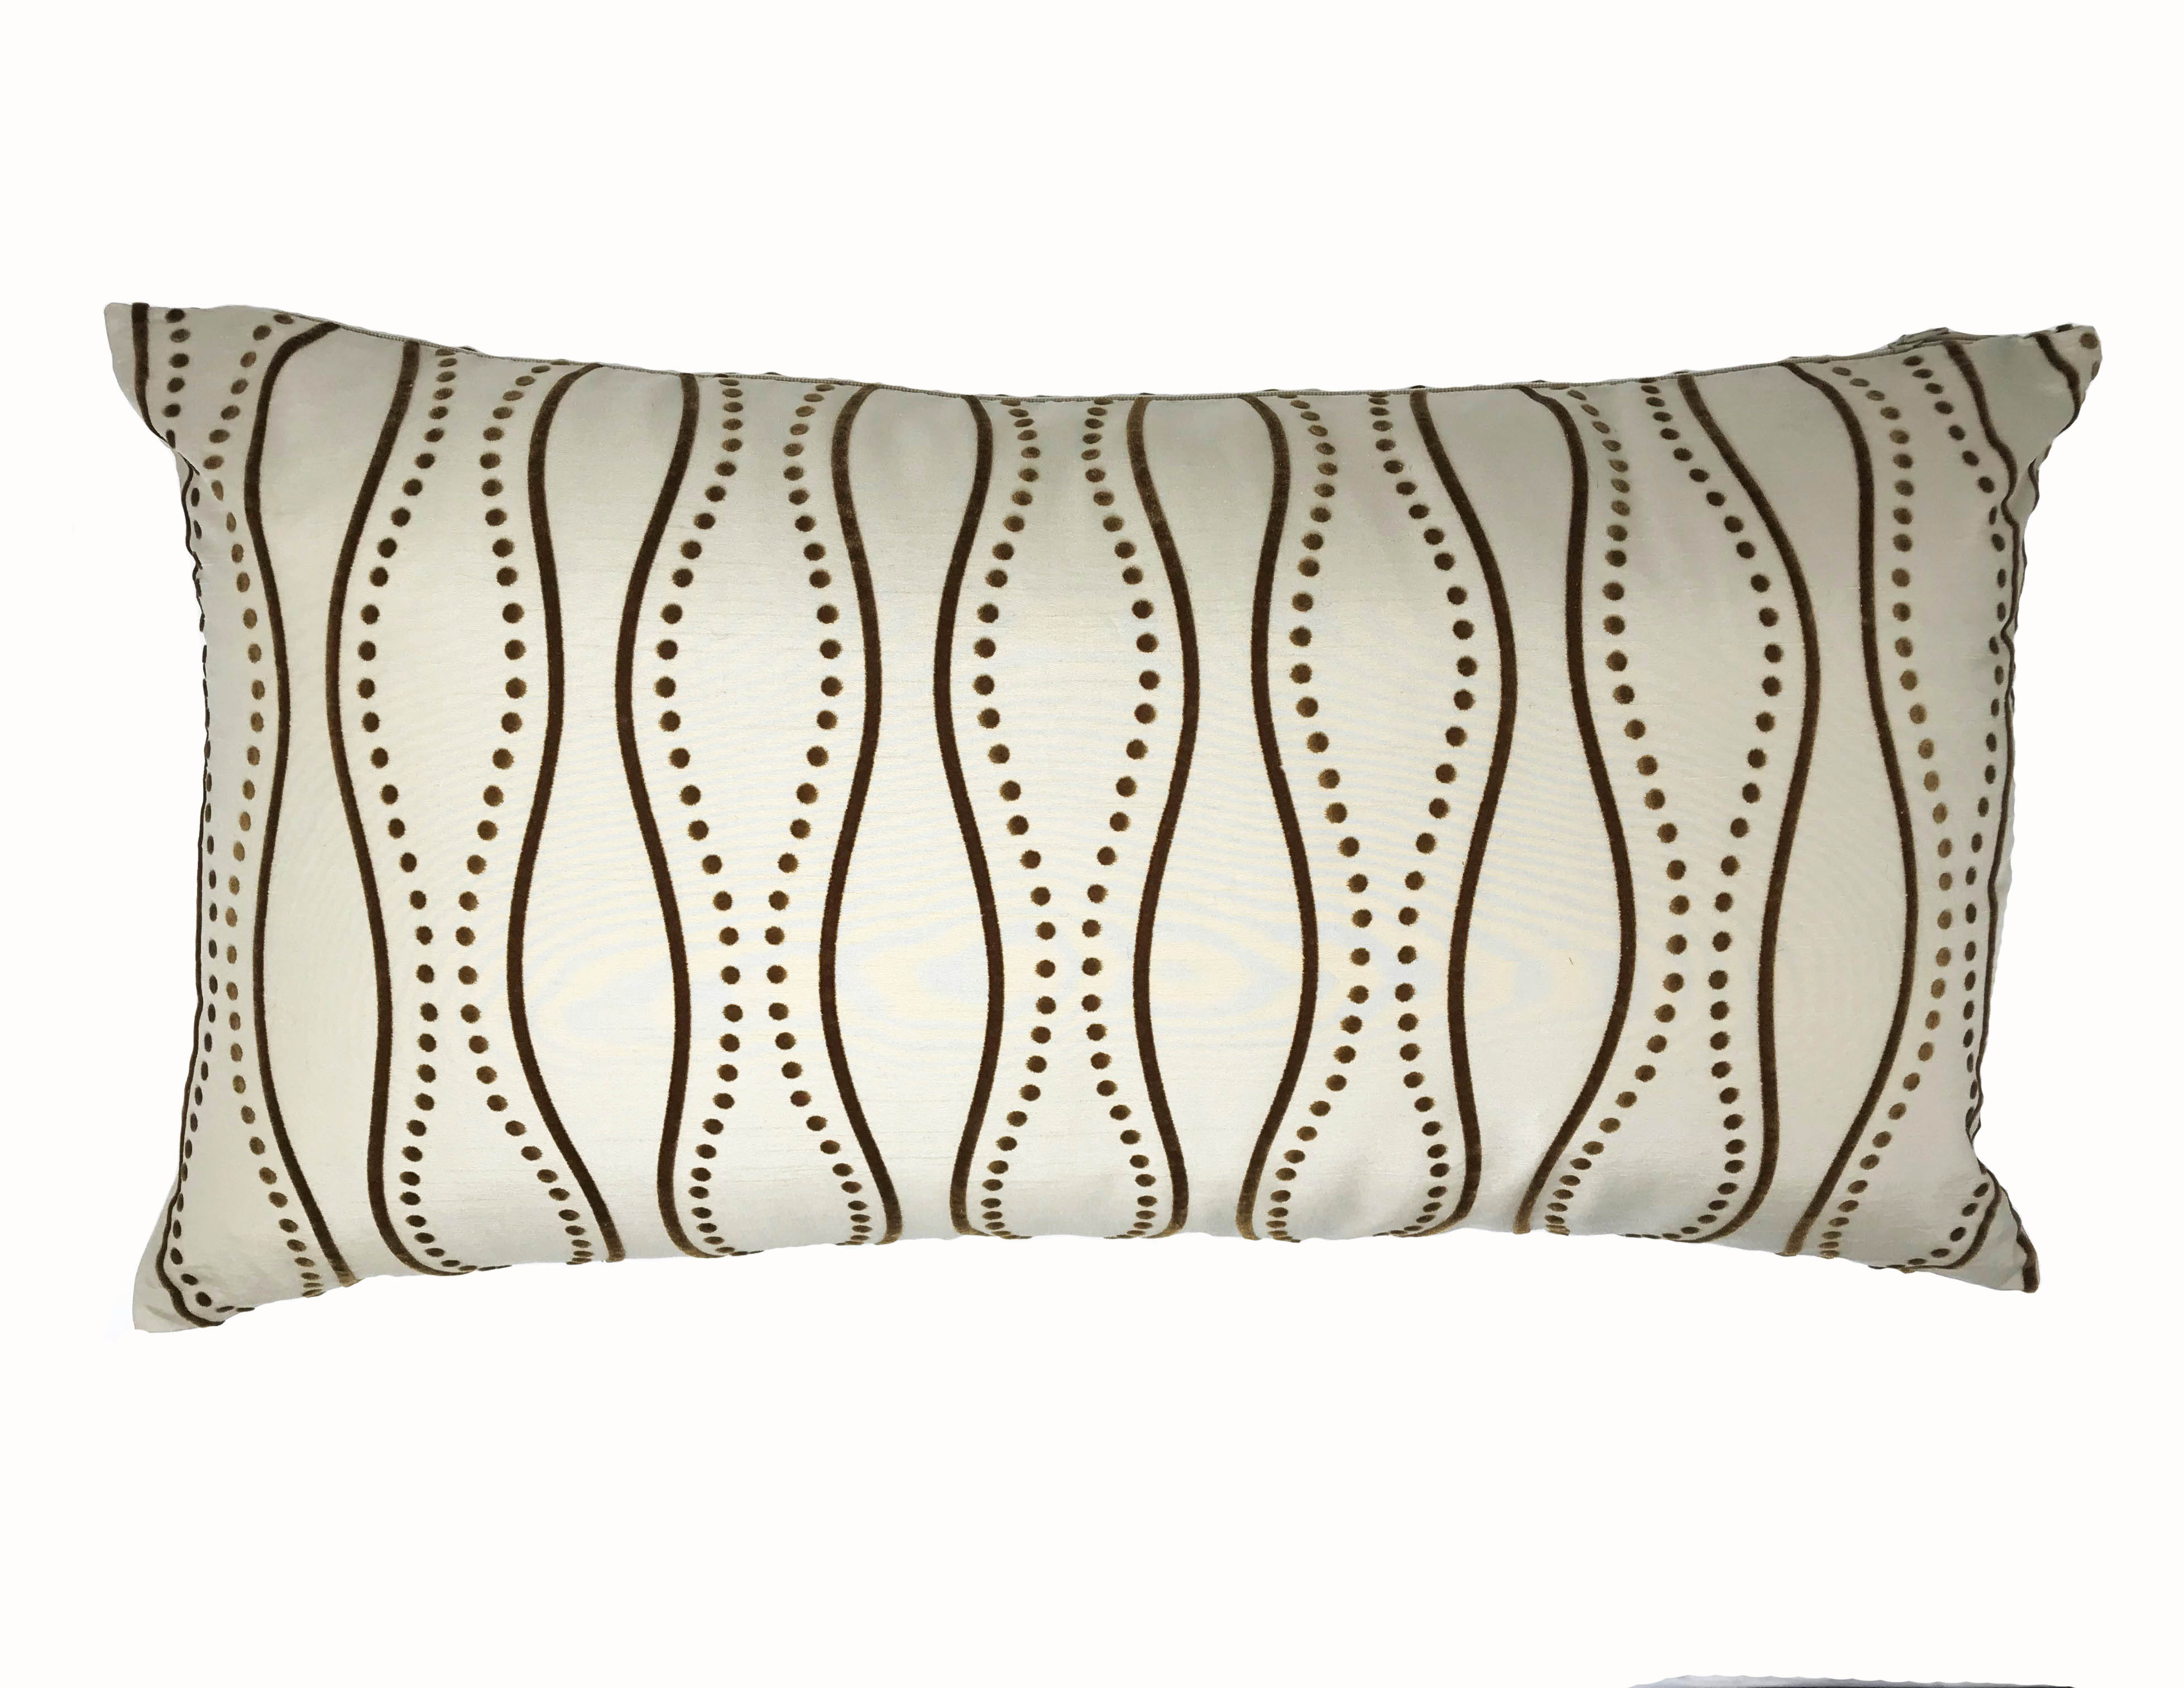 Sienna 60cm x 32cm Cushion Cover Only